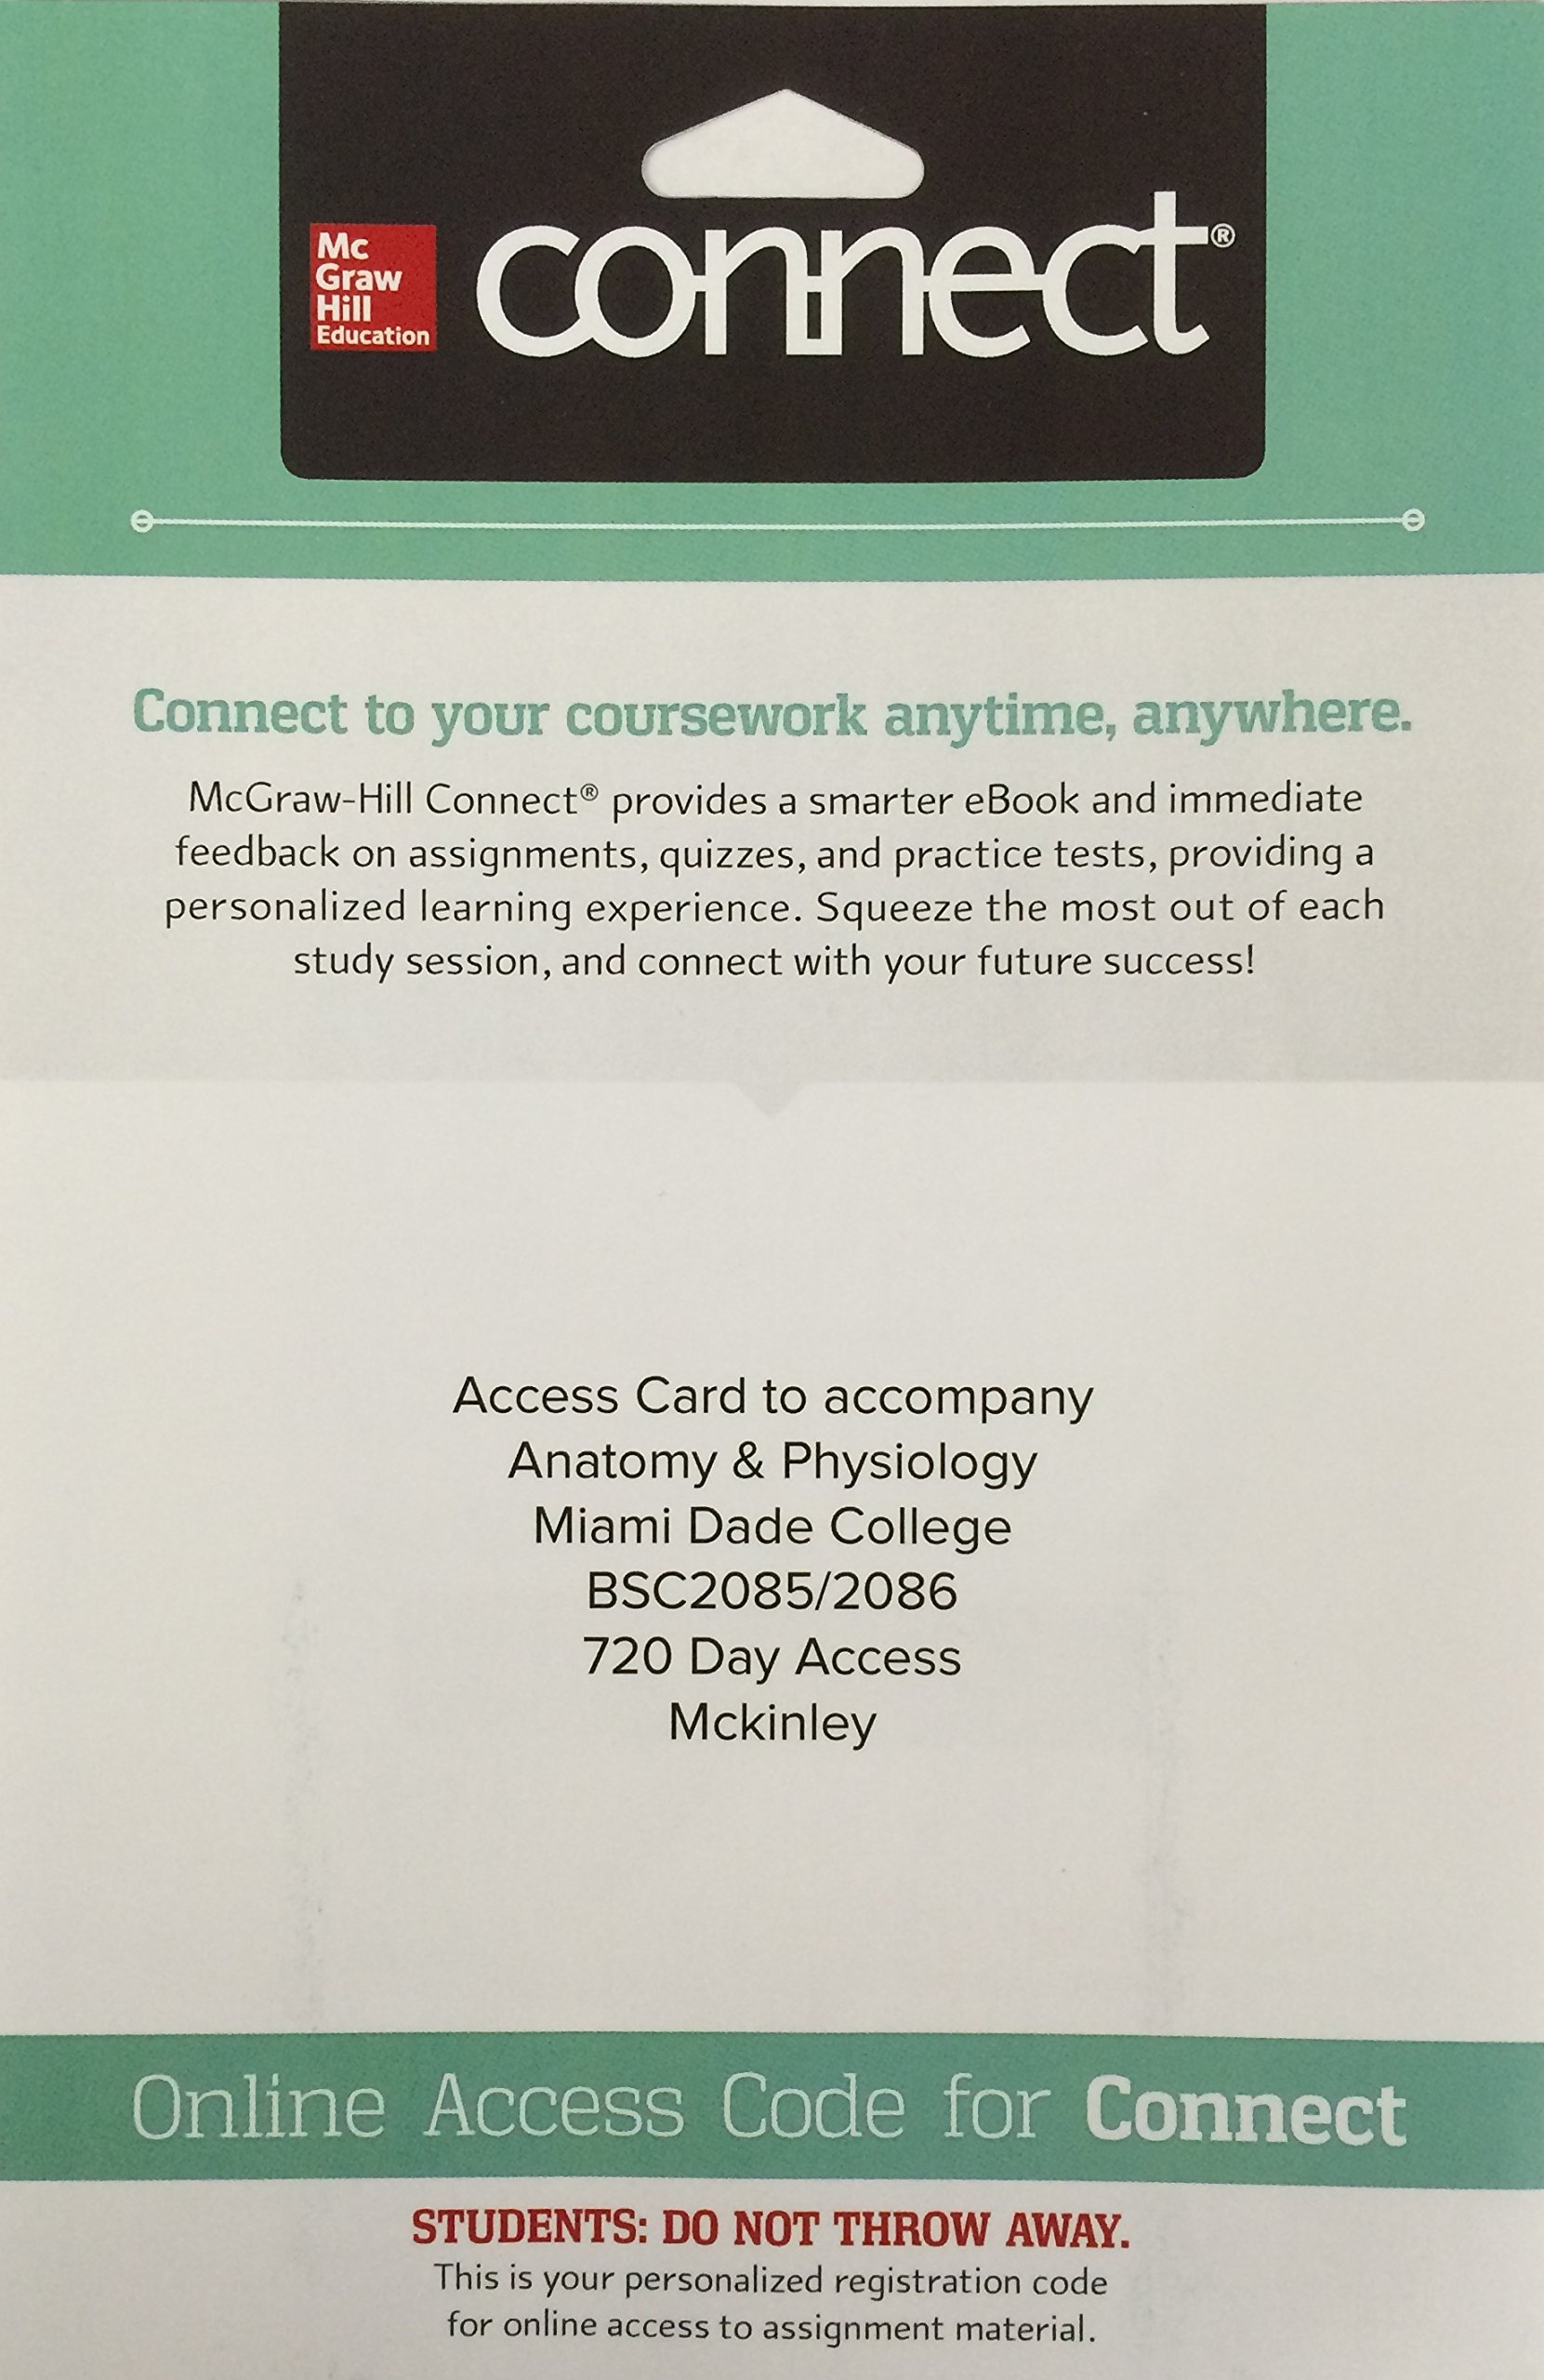 Access Card to Accompany Anatomy & Physiology Miami Dade College ...